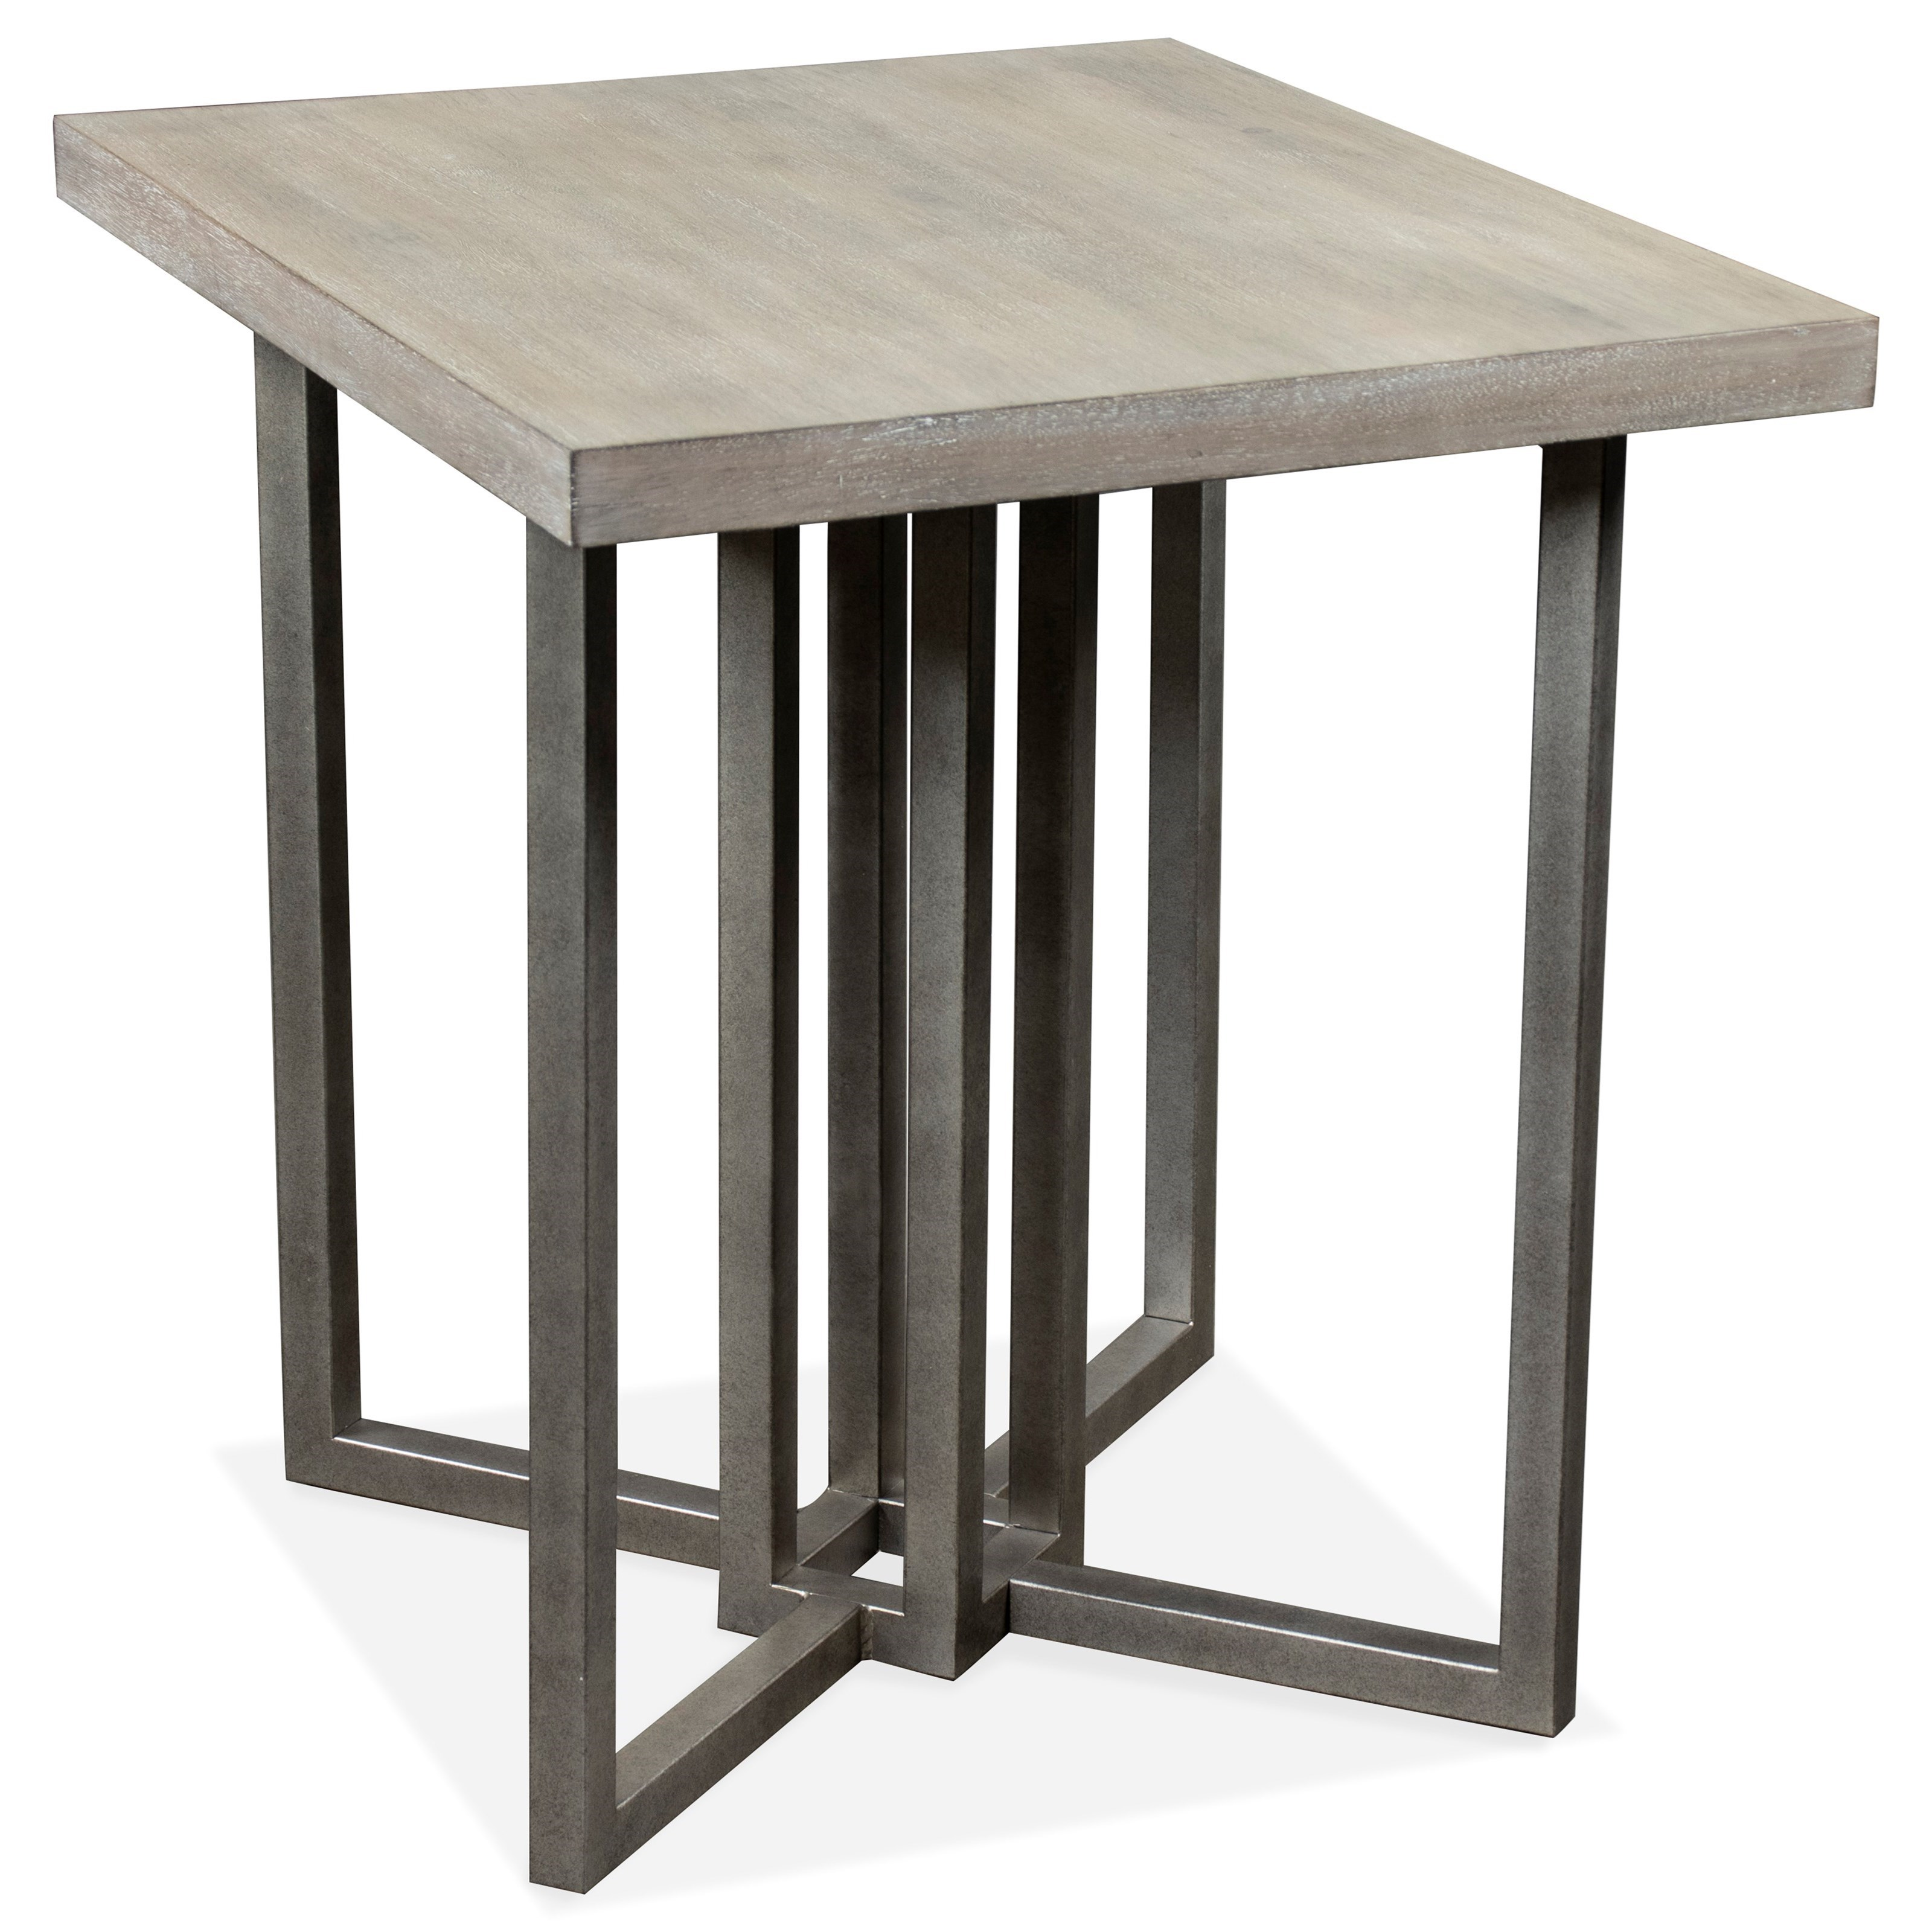 Adelyn Rectangle End Table by Riverside Furniture at A1 Furniture & Mattress